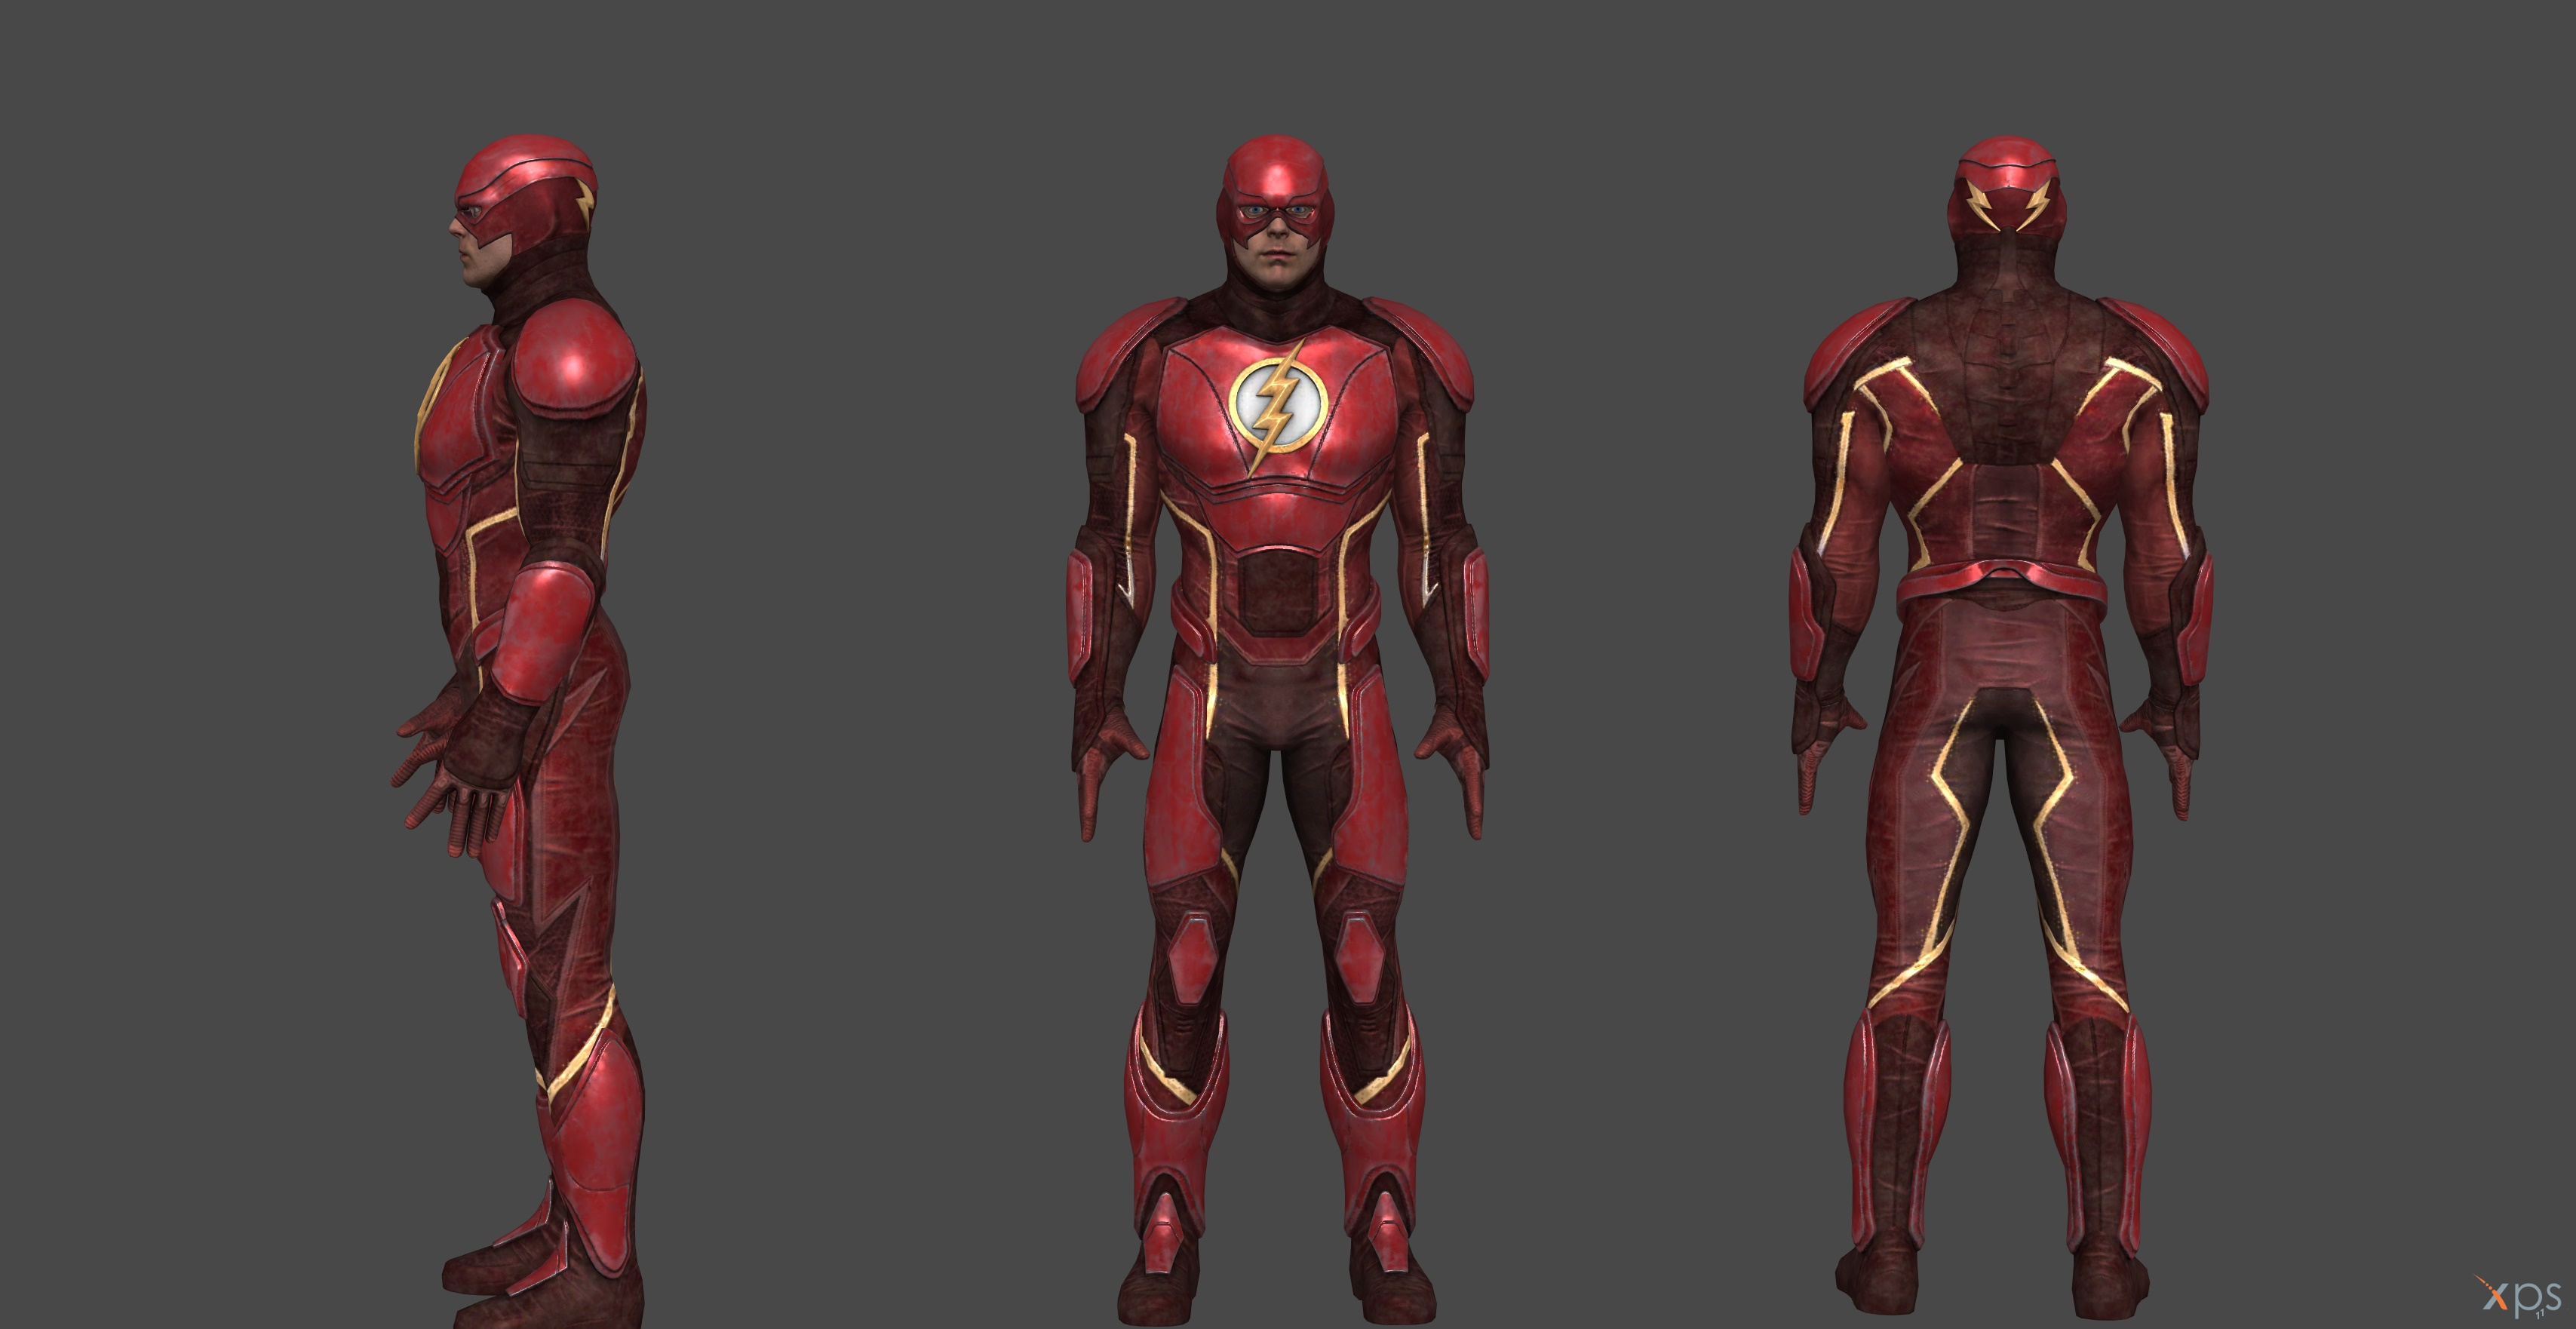 Injustice Flash Version Pictures to Pin on Pinterest ...